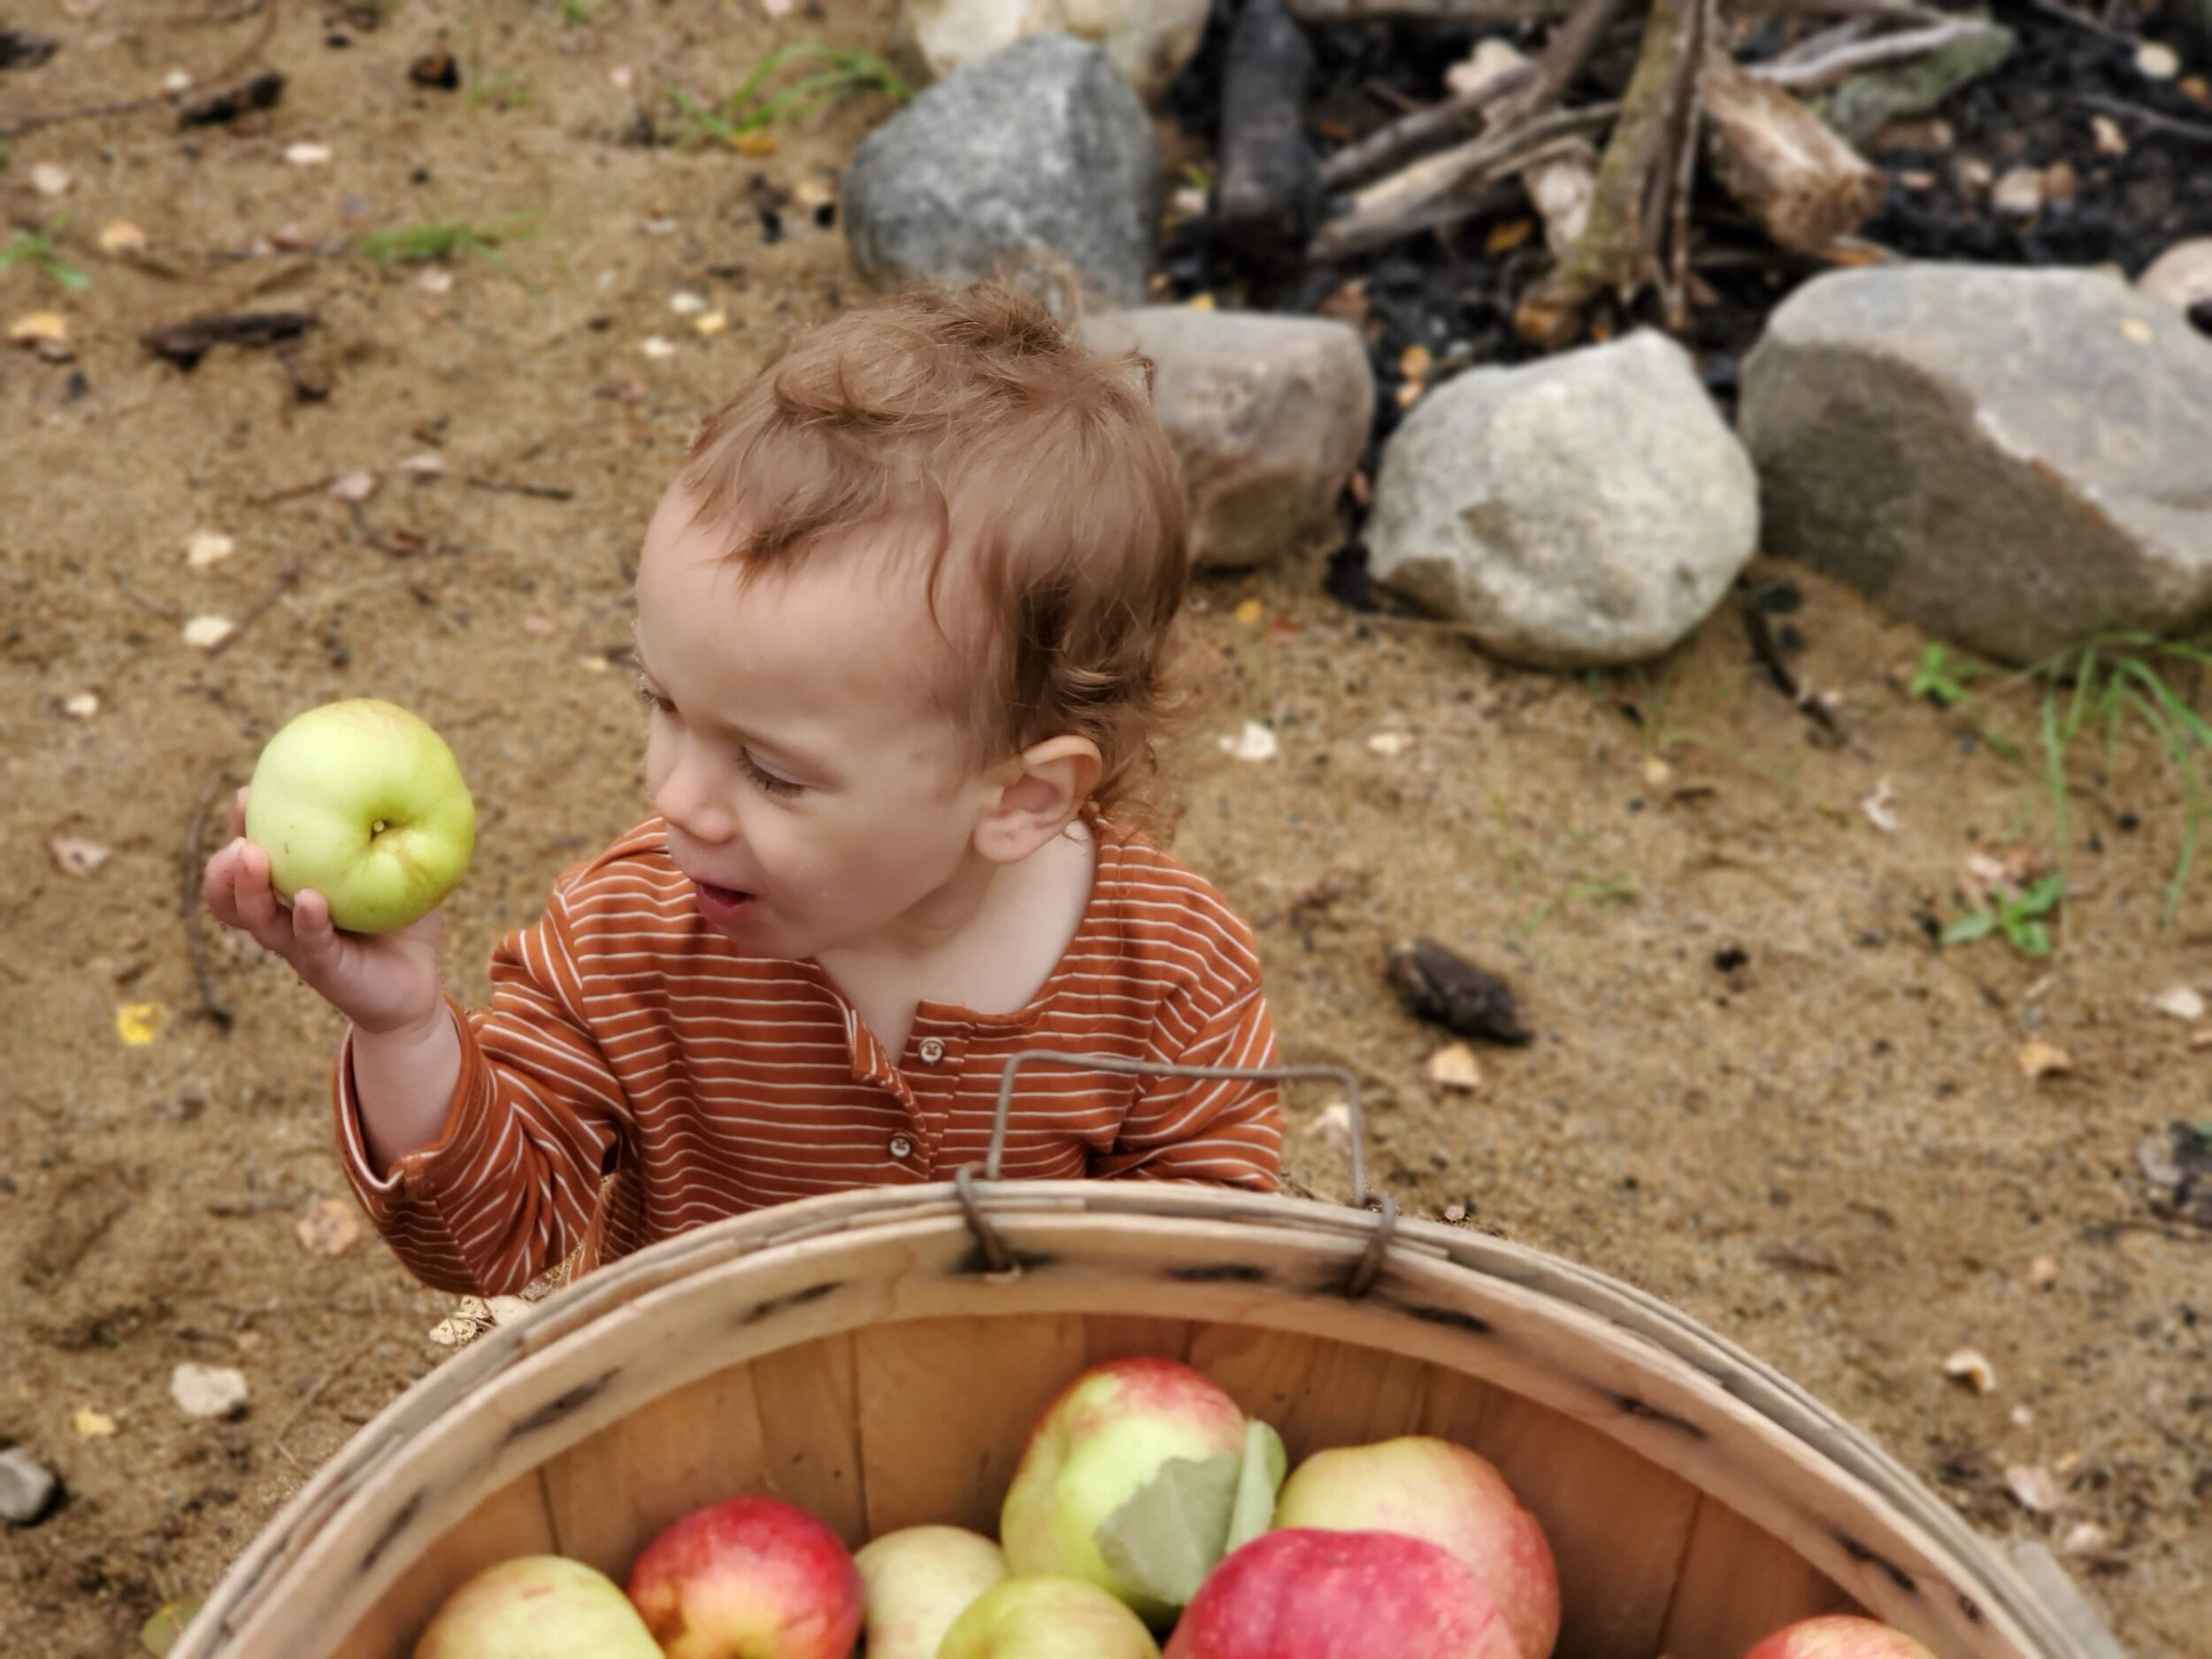 TimberNook's program is weekly, with changing themes. This week was Apples. It began with a story around the campfire about apples where the kids could enjoy their snack from home as well as some freshly picked apples.